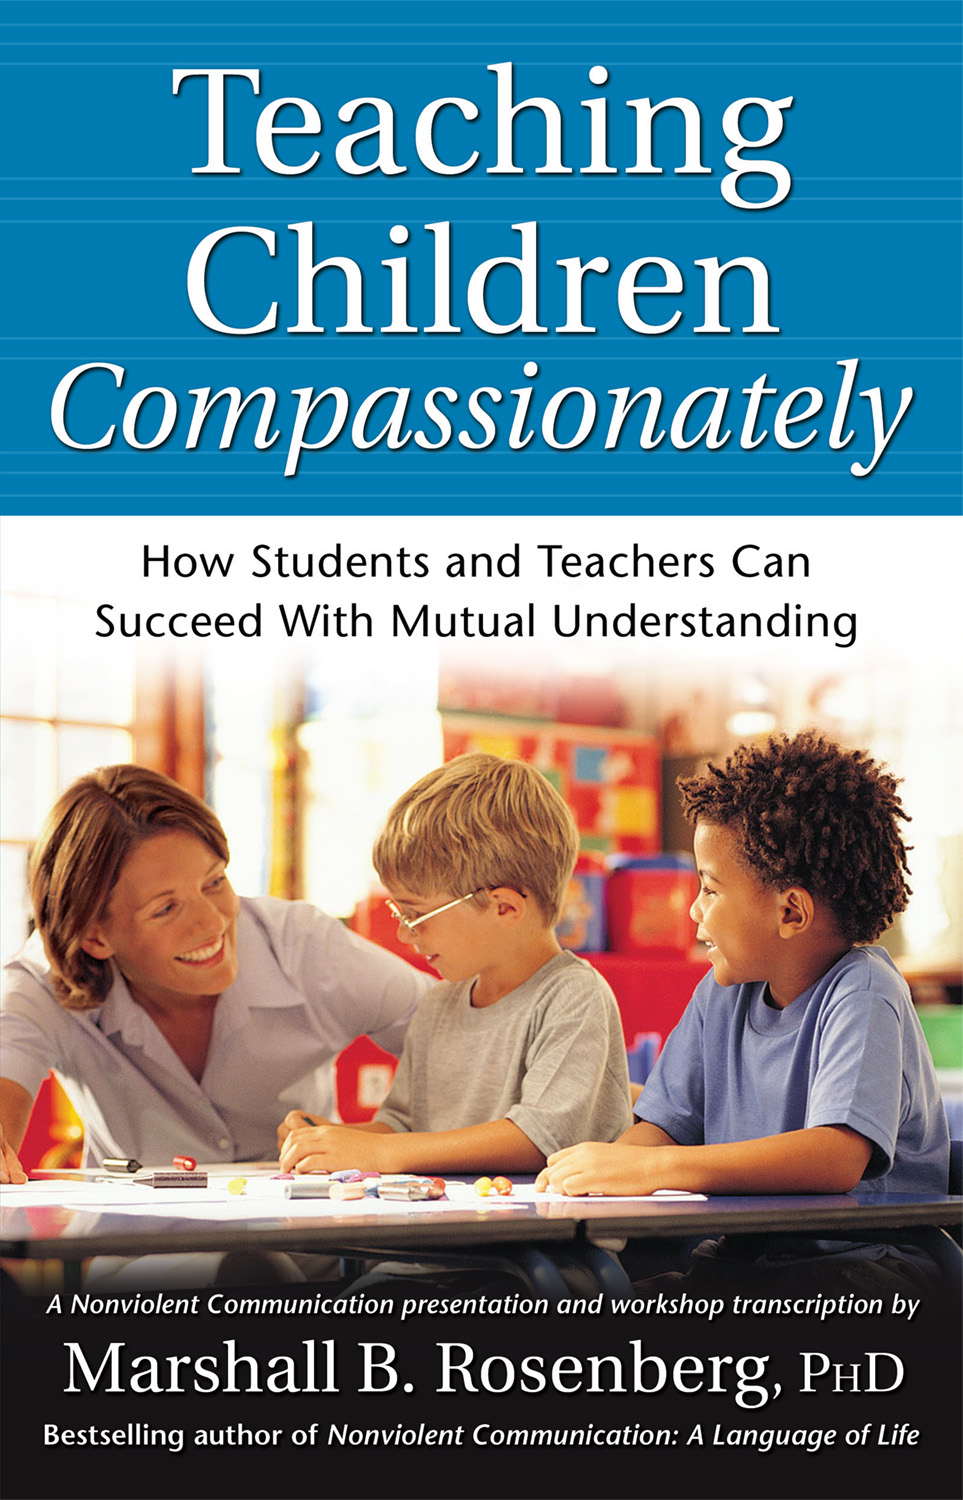 Teaching Children Compassionately Book Cover